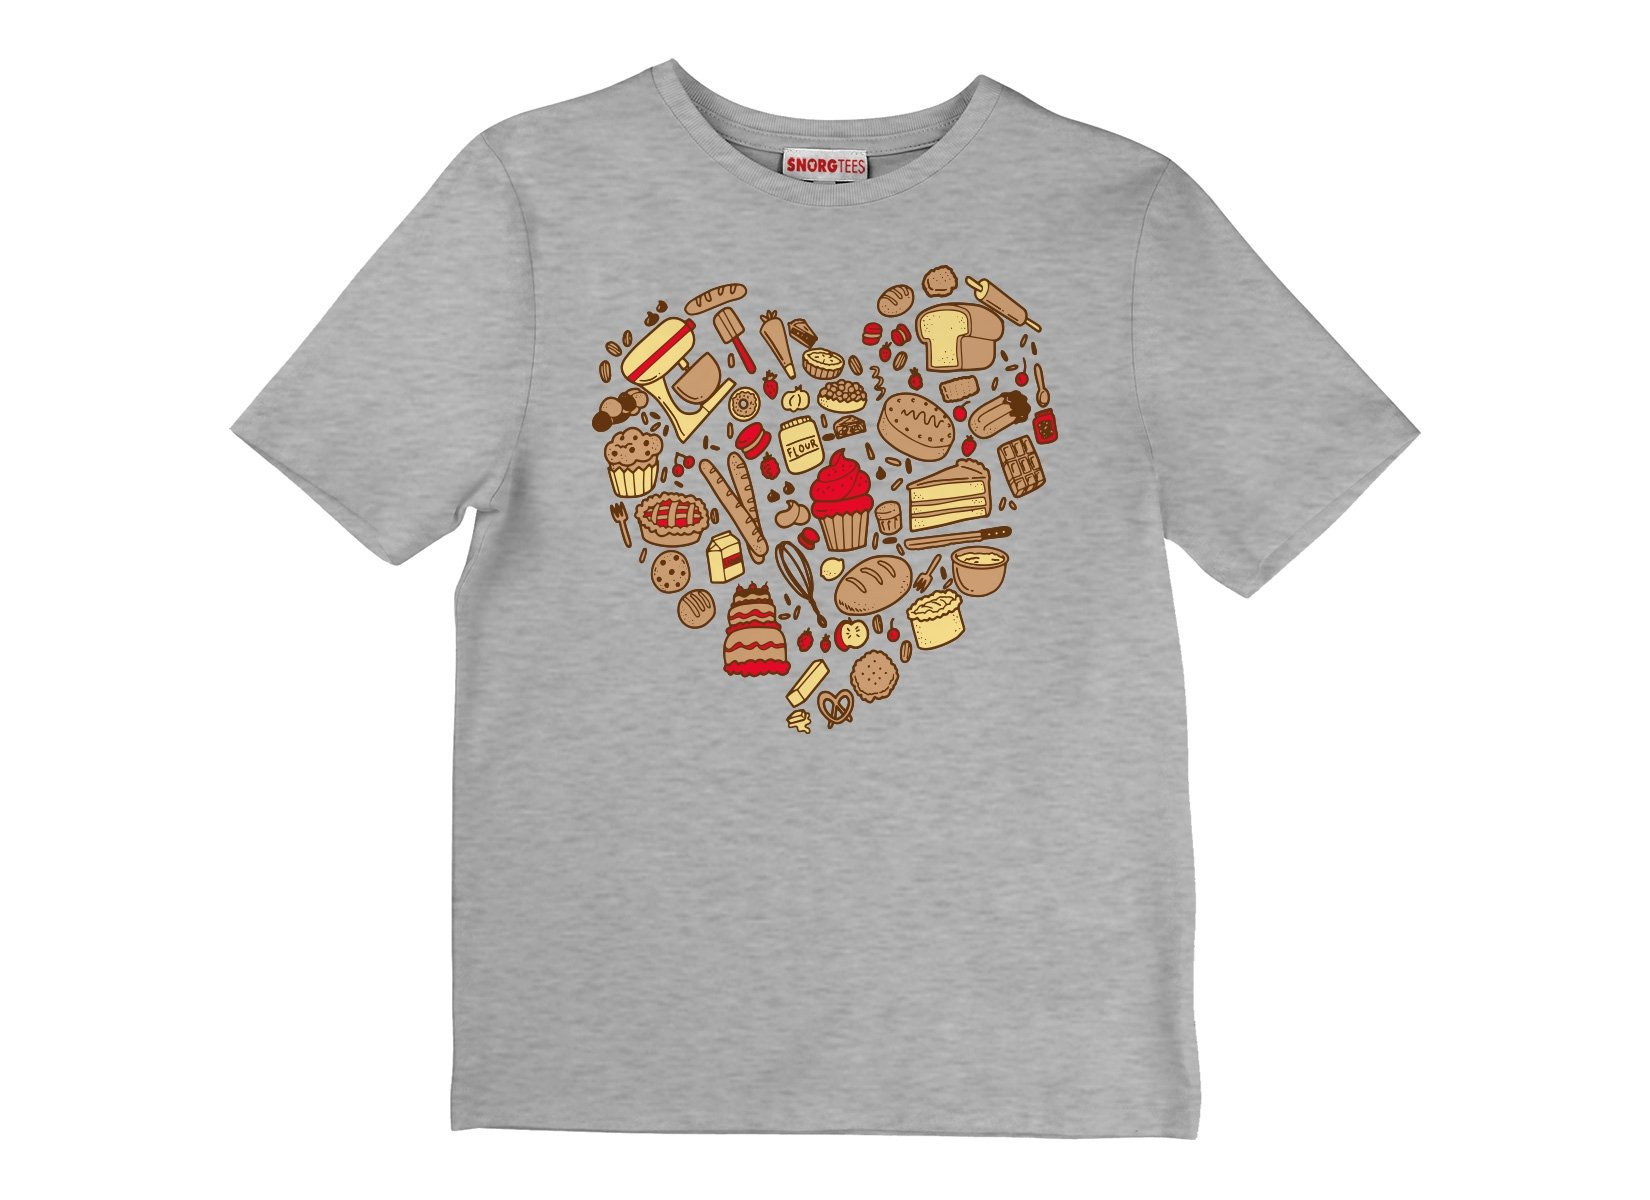 Baking Heart on Kids T-Shirt